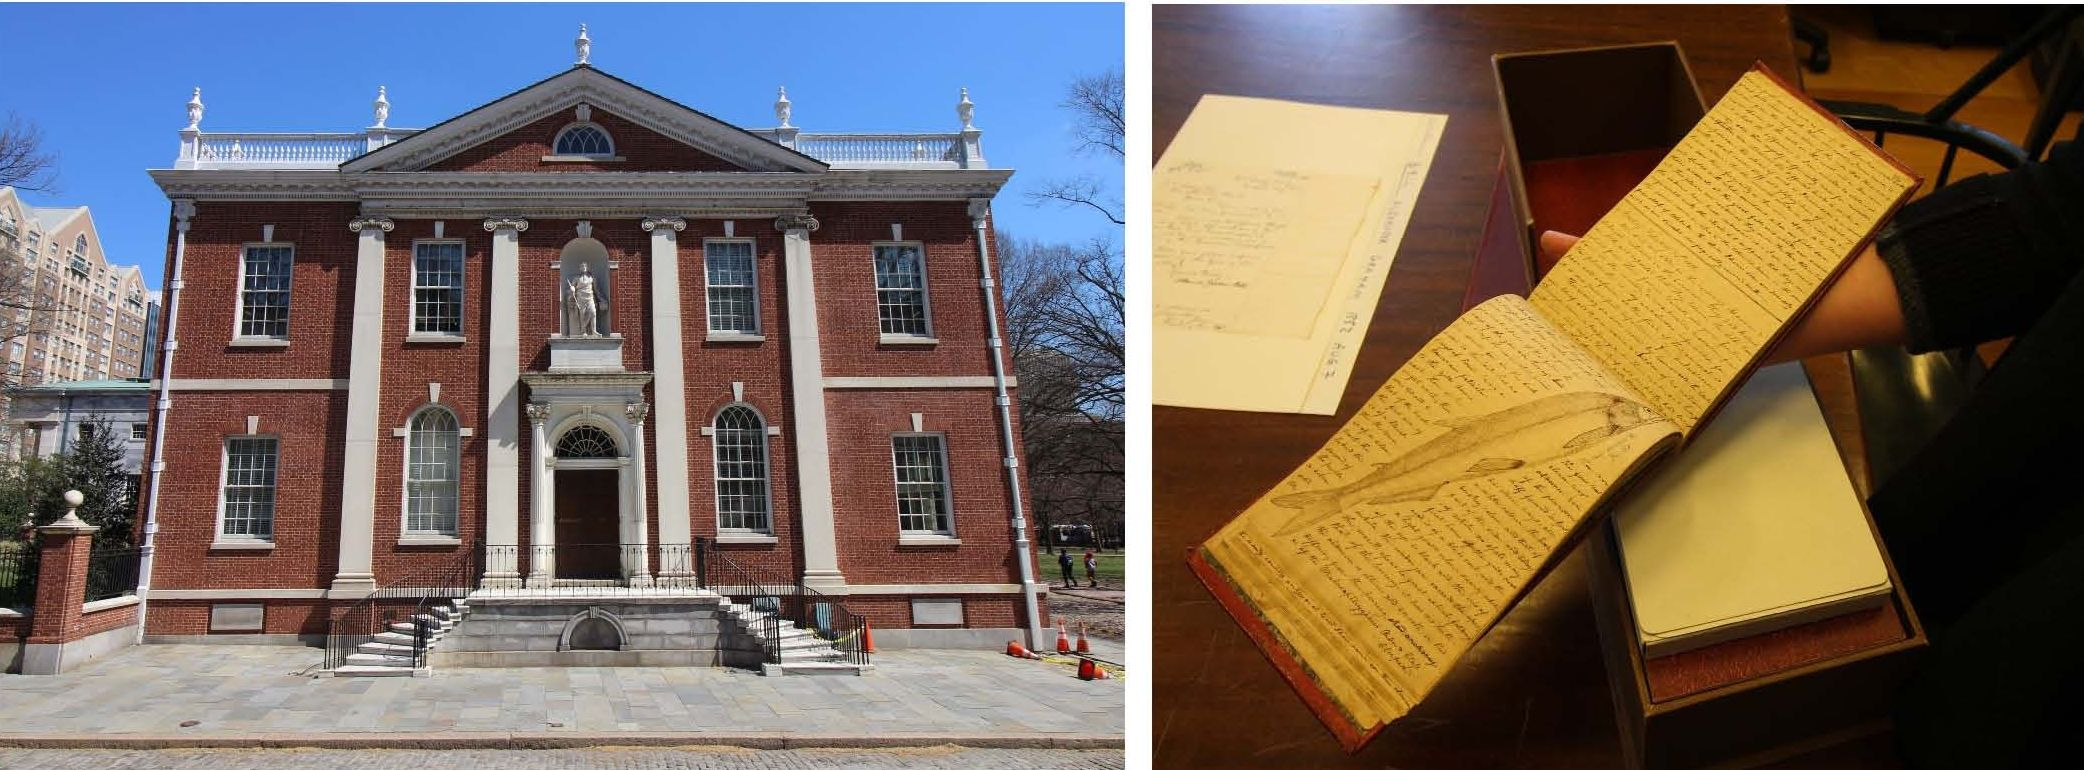 The rich collections at the American Philosophical Society include original journals of Lewis and Clark. Photos by Edwin Grosvenor.